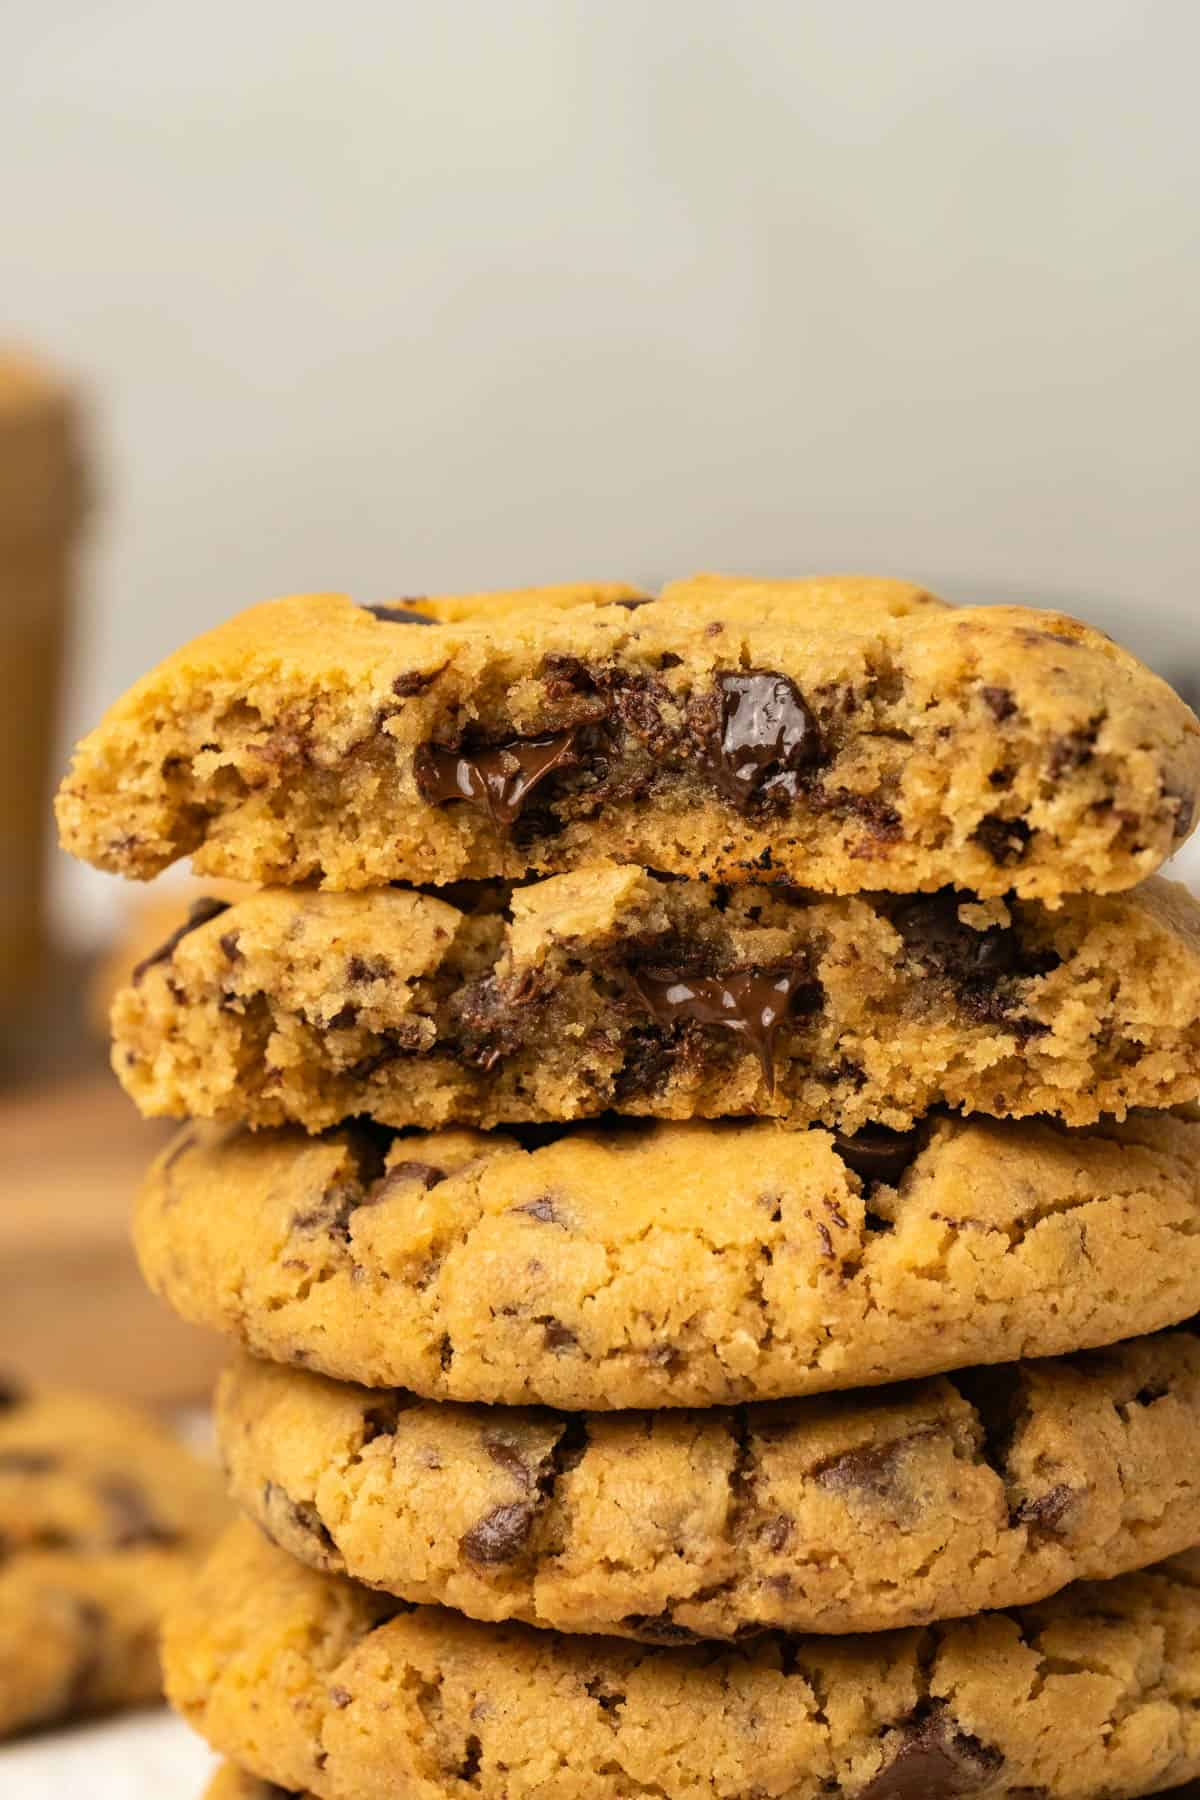 A stack of peanut butter chocolate chip cookies with the top cookie broken in half.